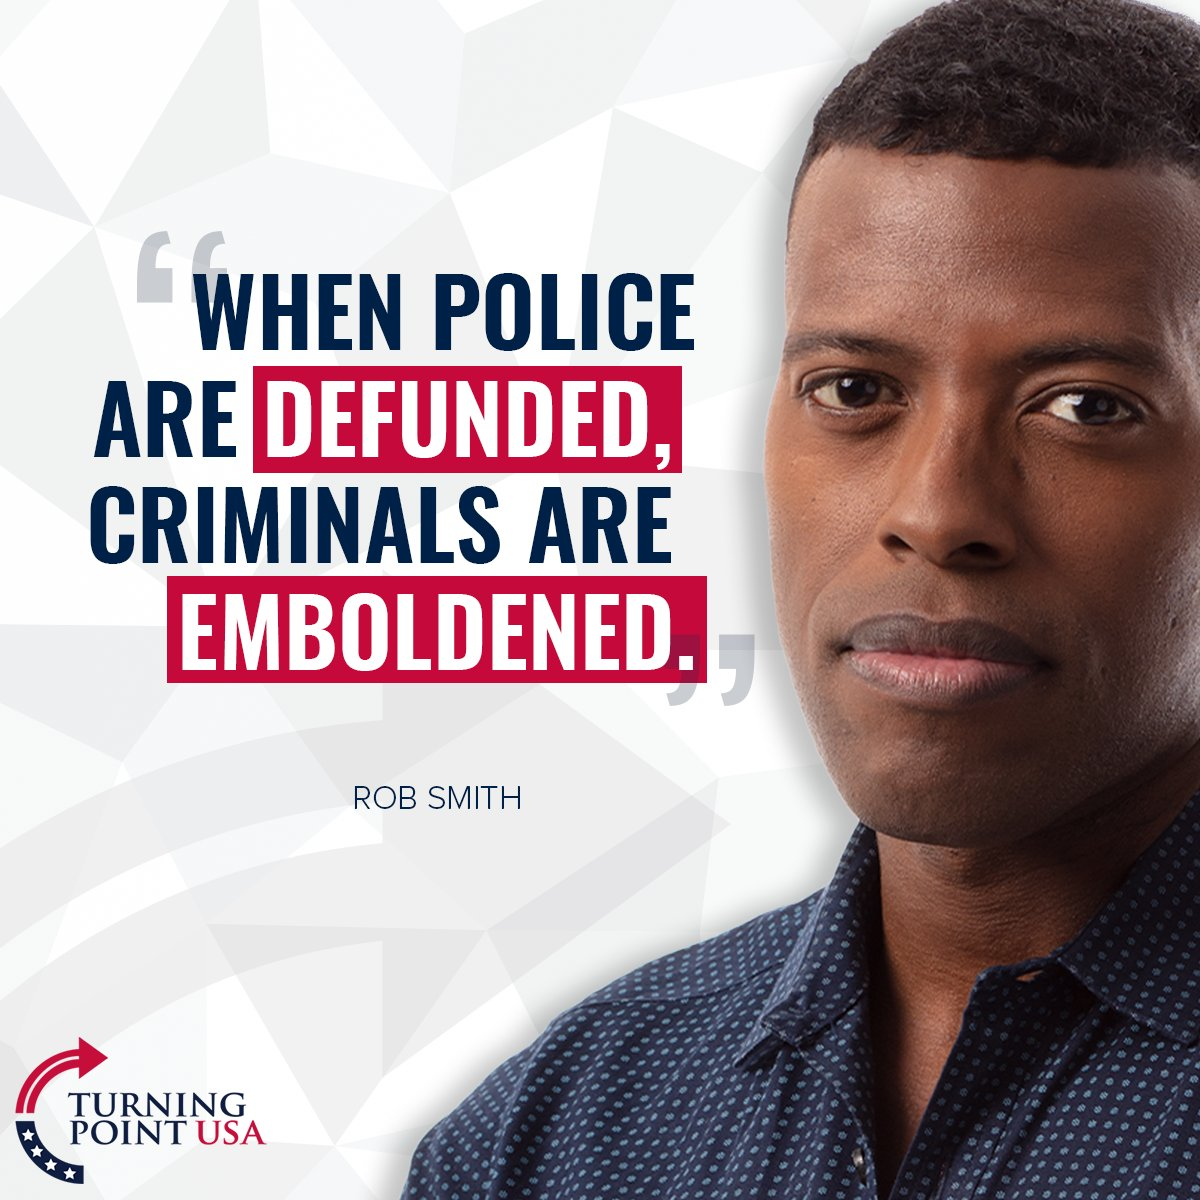 YUP, @robsmithonline! We Need To DEFEND Good Cops, Not Defund Them! #ThinkForYourself